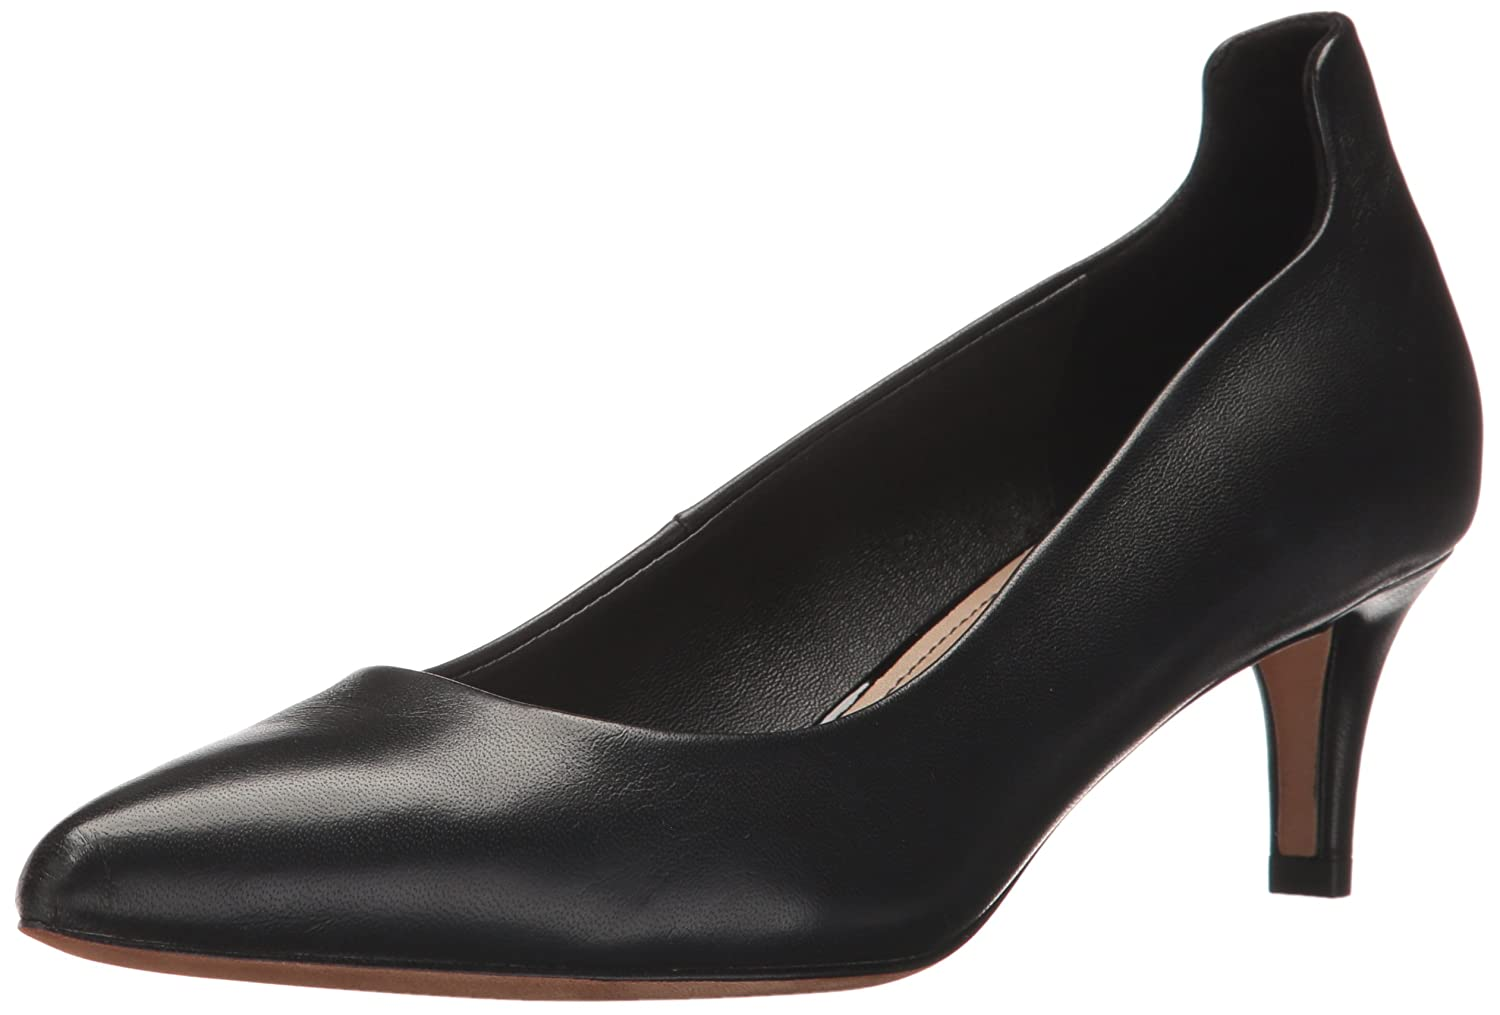 Donald J Pliner Women's Bari Pump B06XPN1HHP 7.5 B(M) US|Black